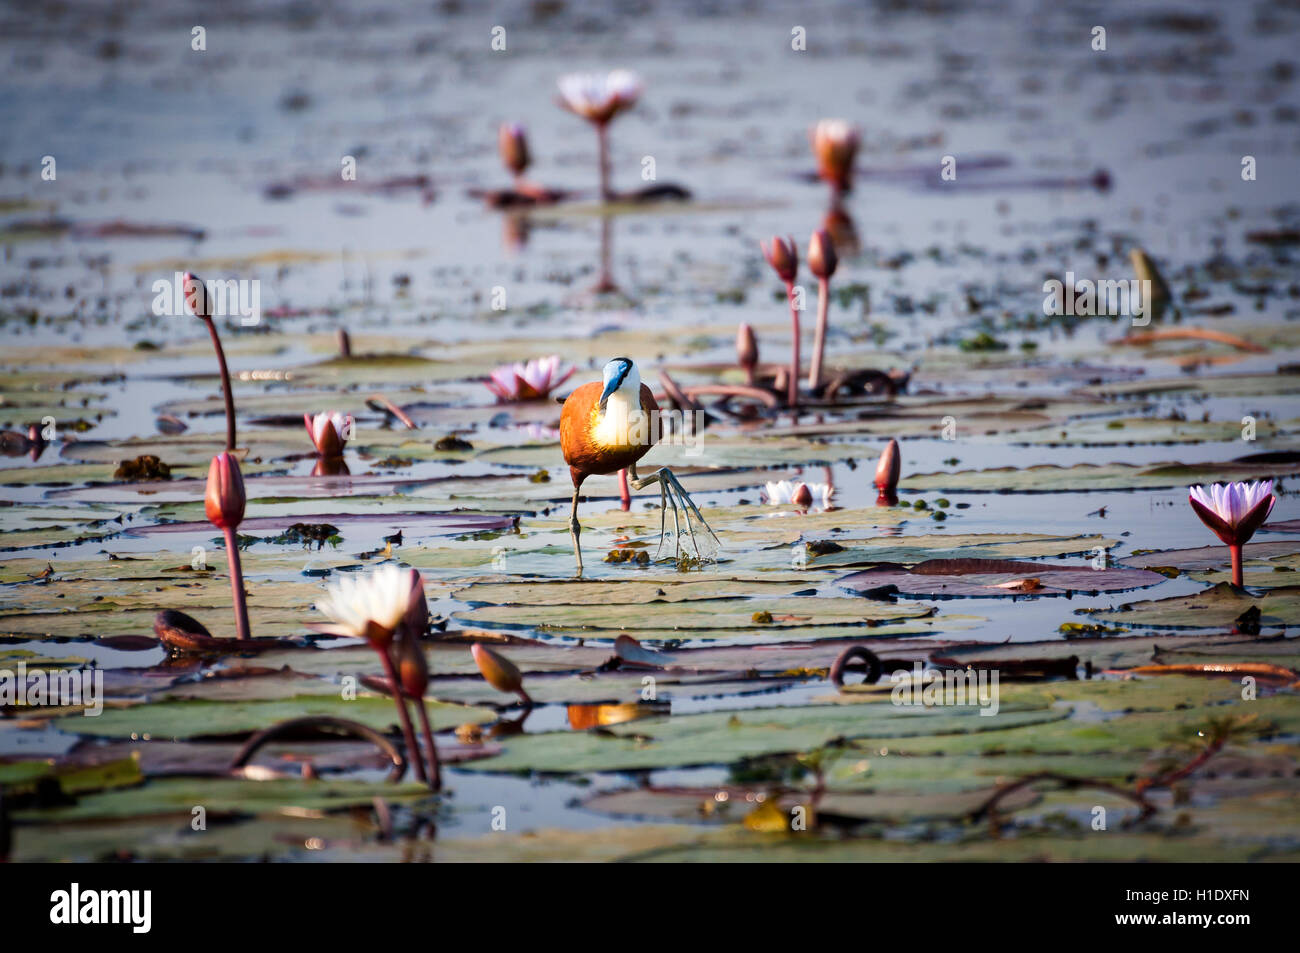 African Jacana in the Chobe River, Chobe National Park, in Botswana, Africa - Stock Image